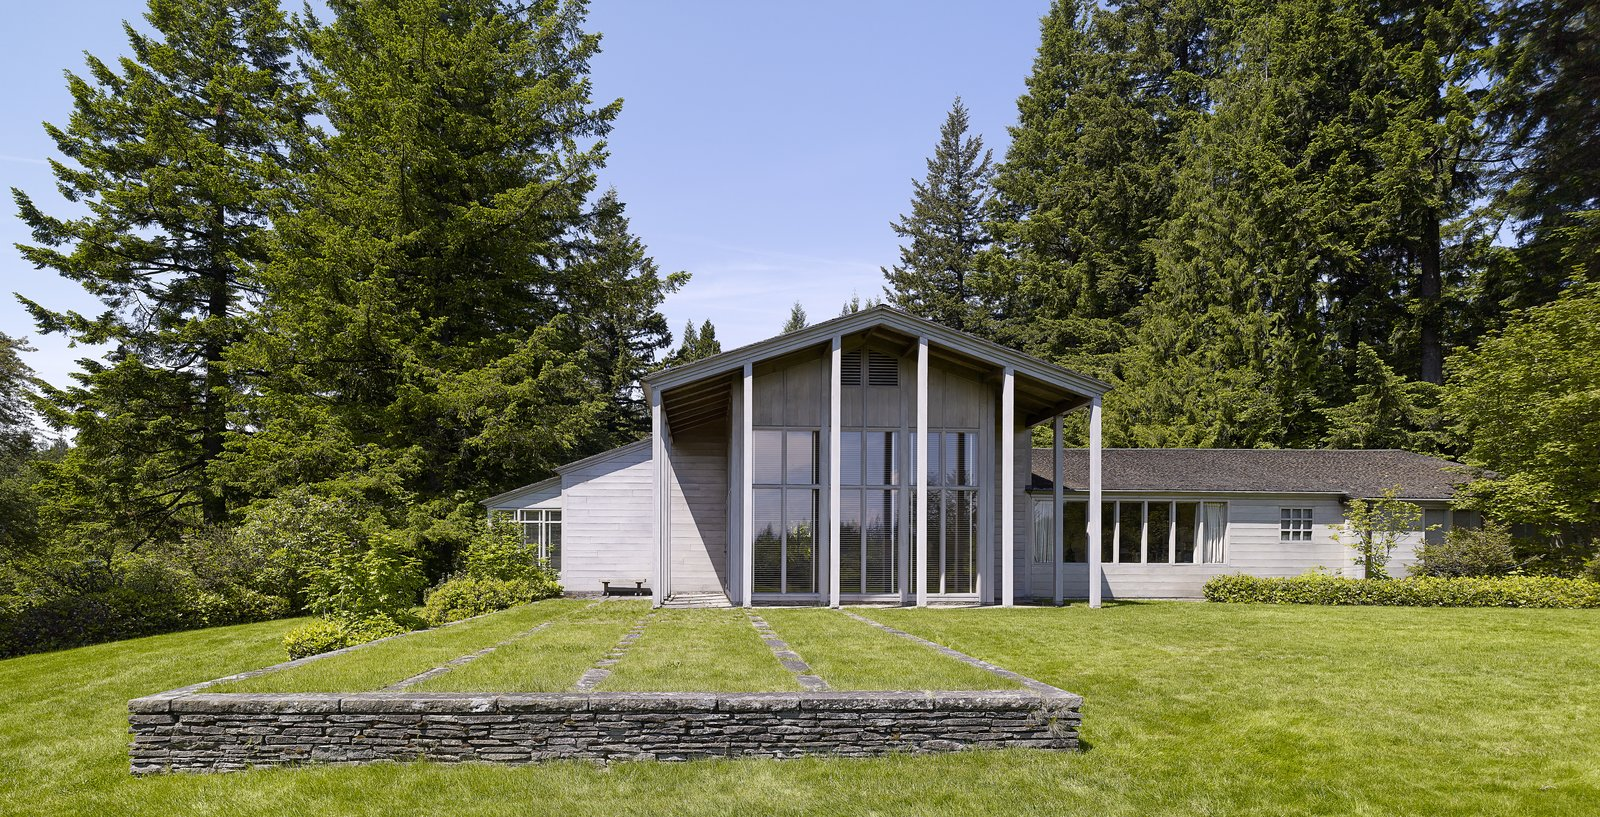 The Aubrey Yeon met Wright as a young man, and described his own relationship to Wright's work as,  Photo 3 of 15 in Spotlight on John Yeon, the Father of Northwest Regional Architecture